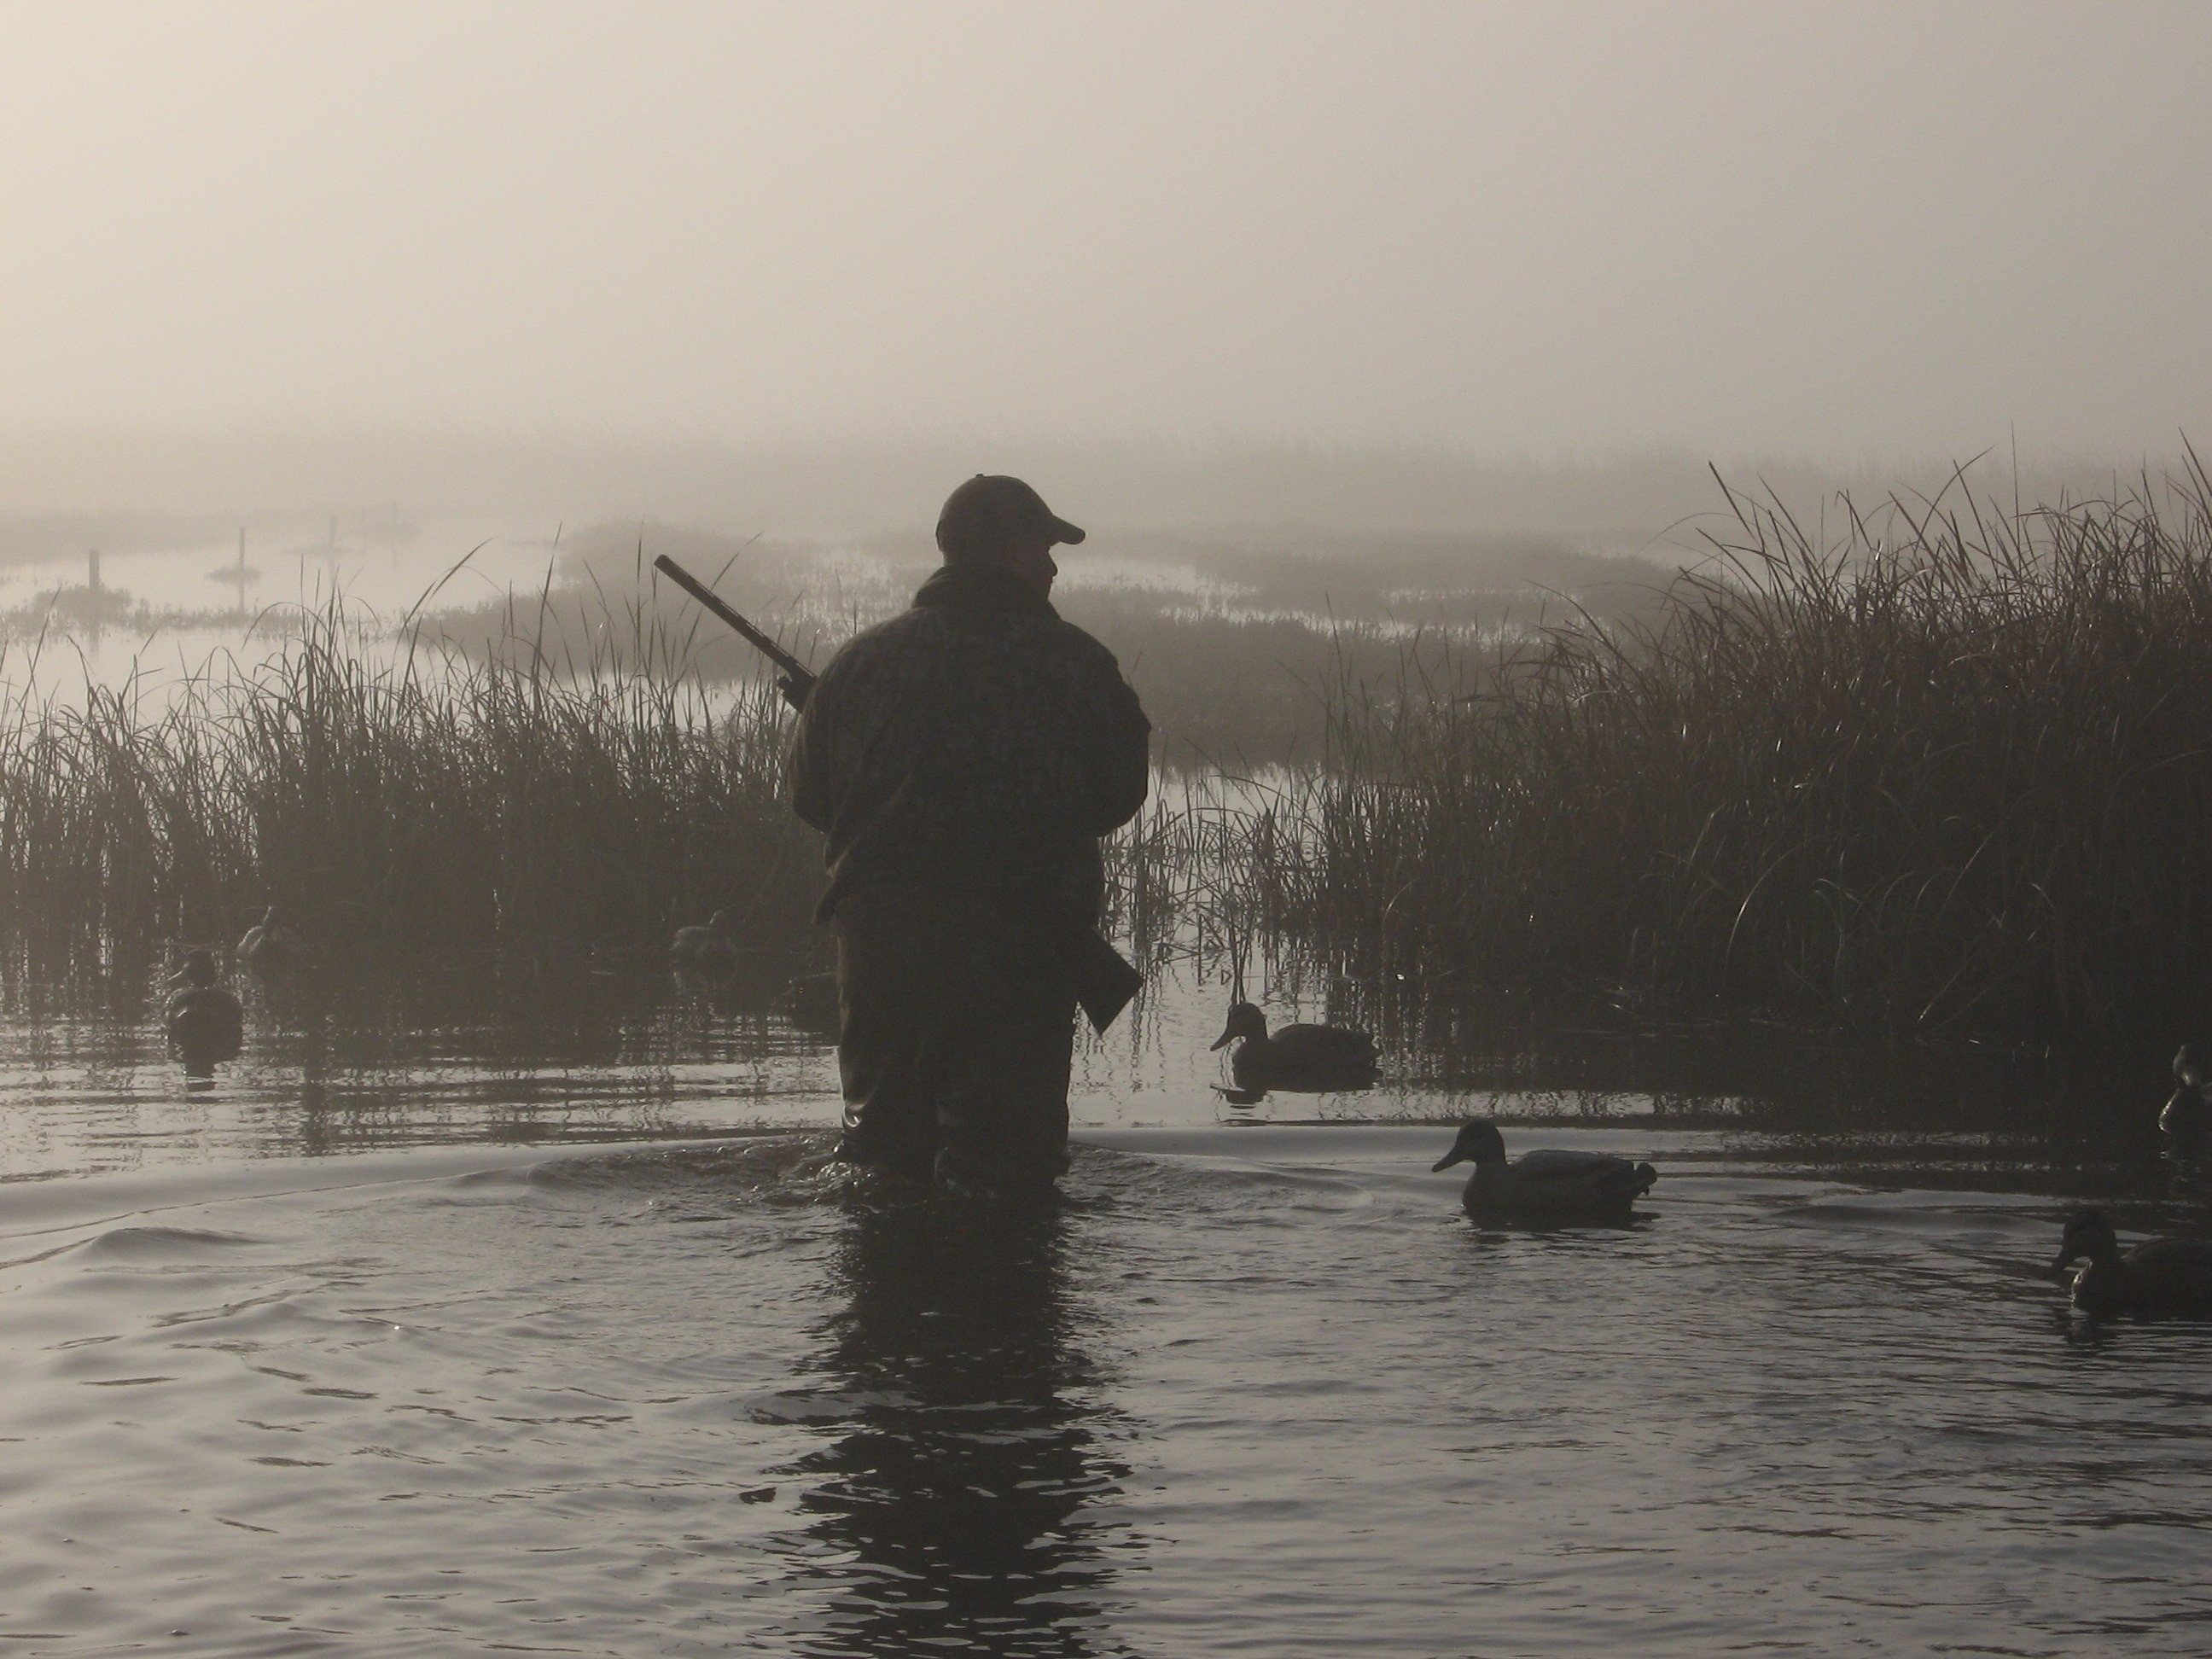 Photo courtesy of ducksunlimited.com